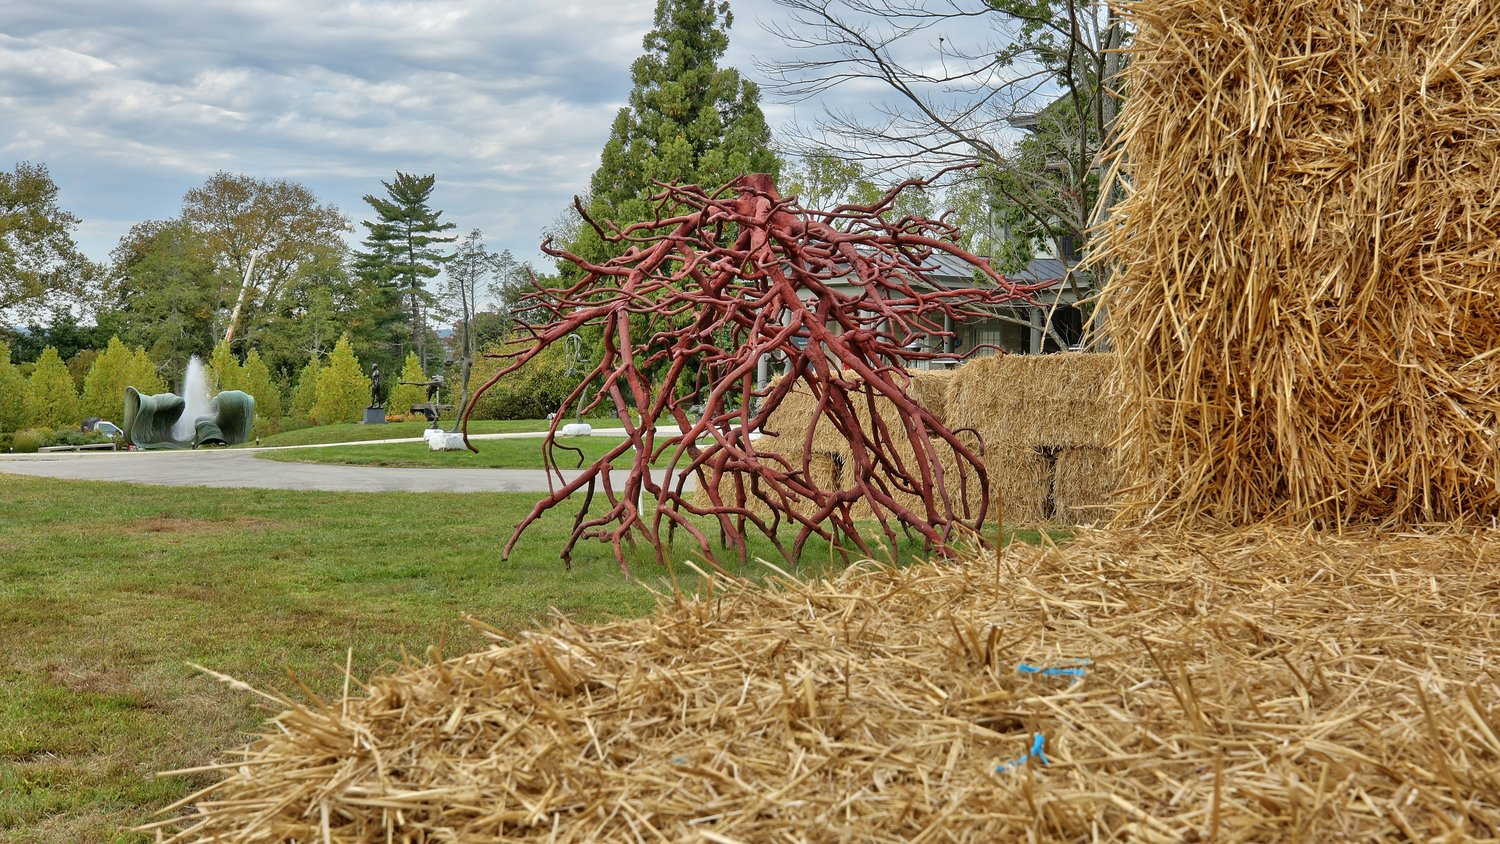 "Woodmere's annual straw maze has been reimagined into a socially distanced learning experience. Center here is Steve Tobin's sculpture ""Alter Root."" Behind (from left) are Harry Bertoia's 